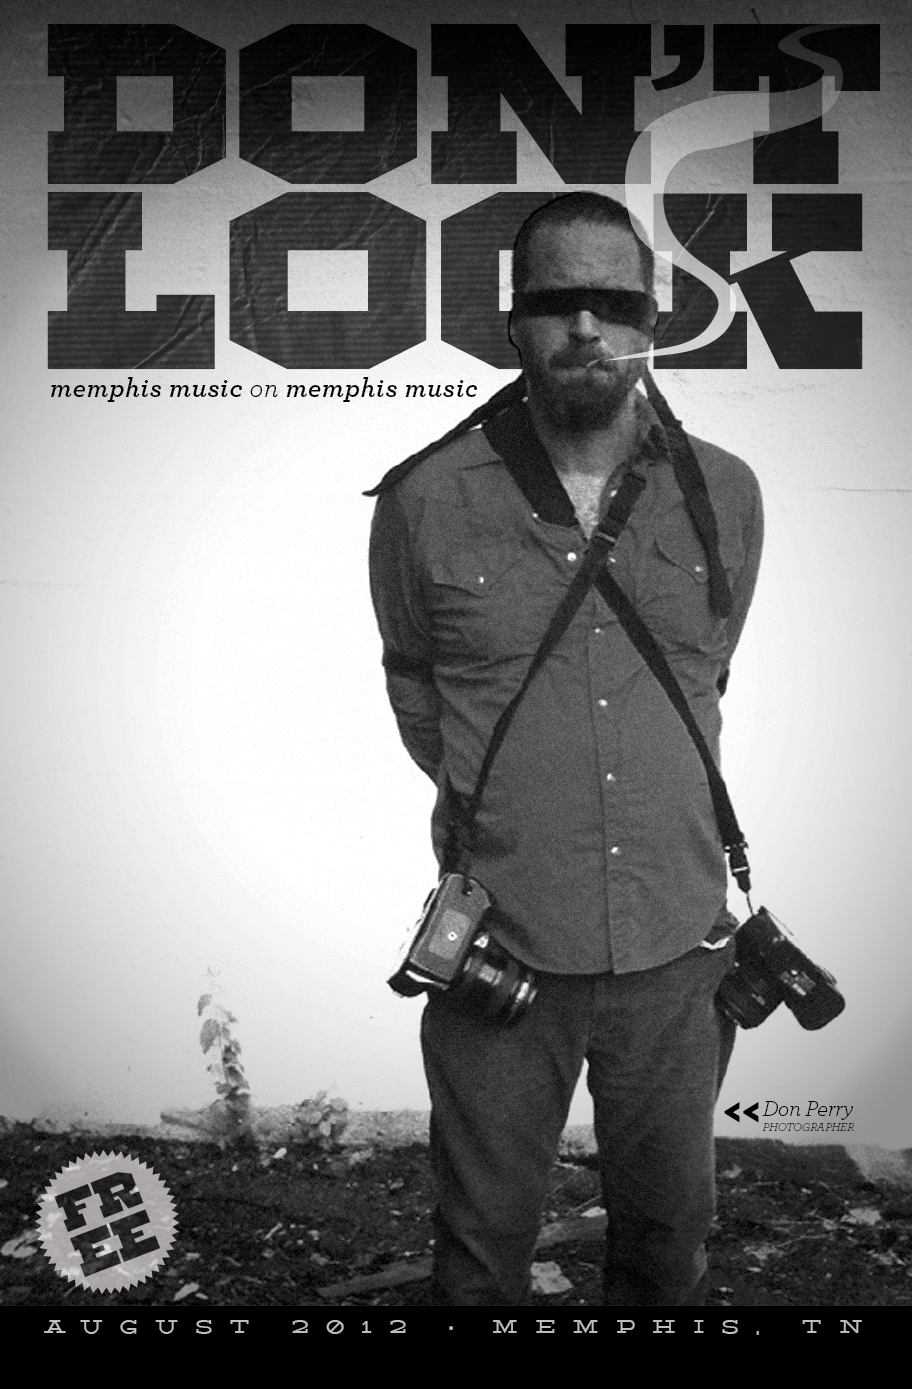 New issue of DON'T LOOK out now » all type, design & layout by ERF / cover story on Bullyrook